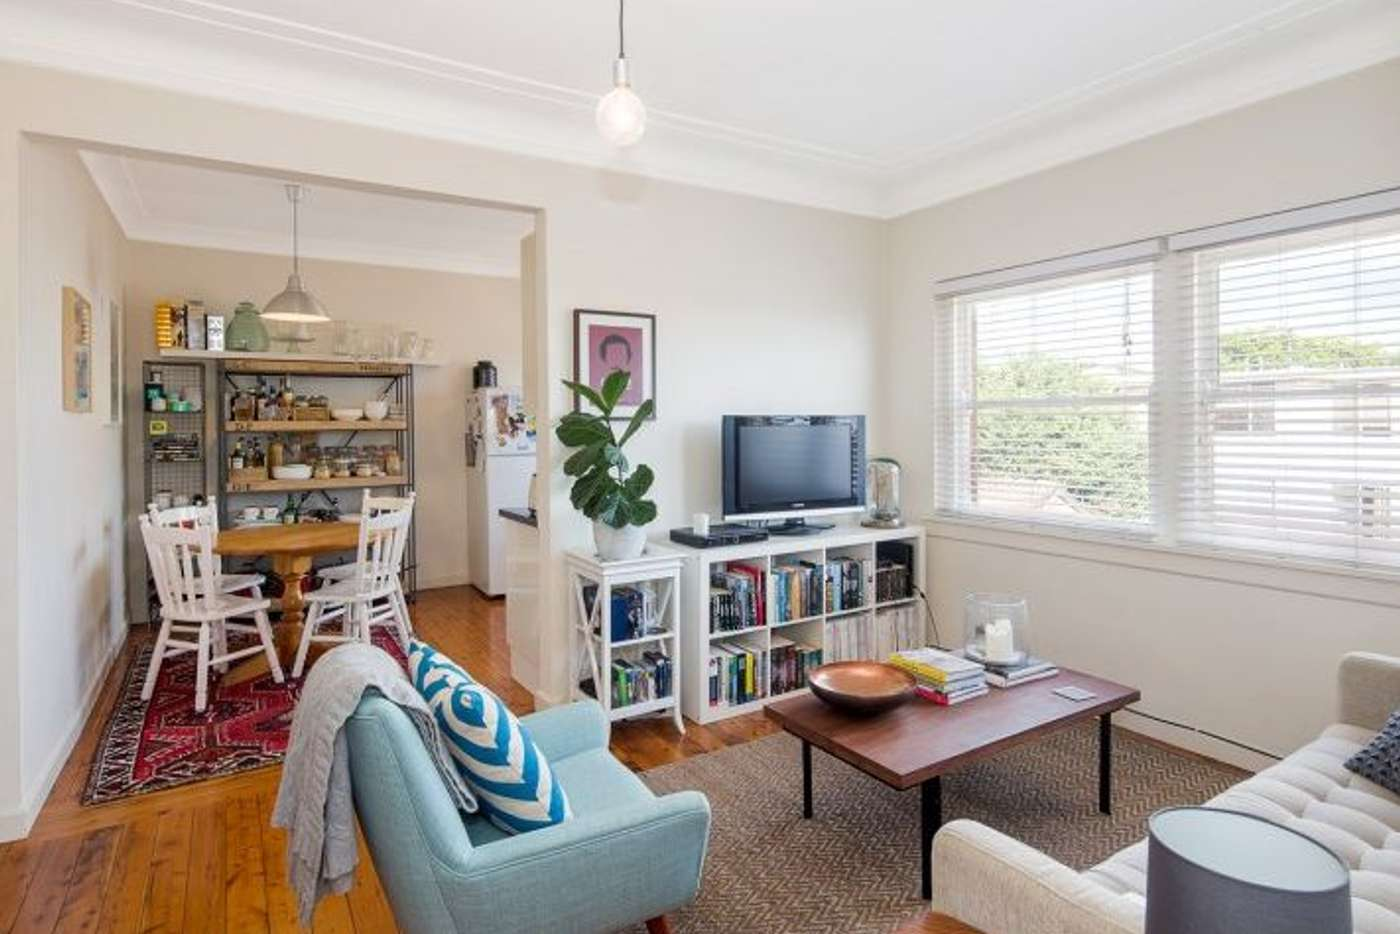 Main view of Homely apartment listing, 9/17 Cook Street, Randwick NSW 2031